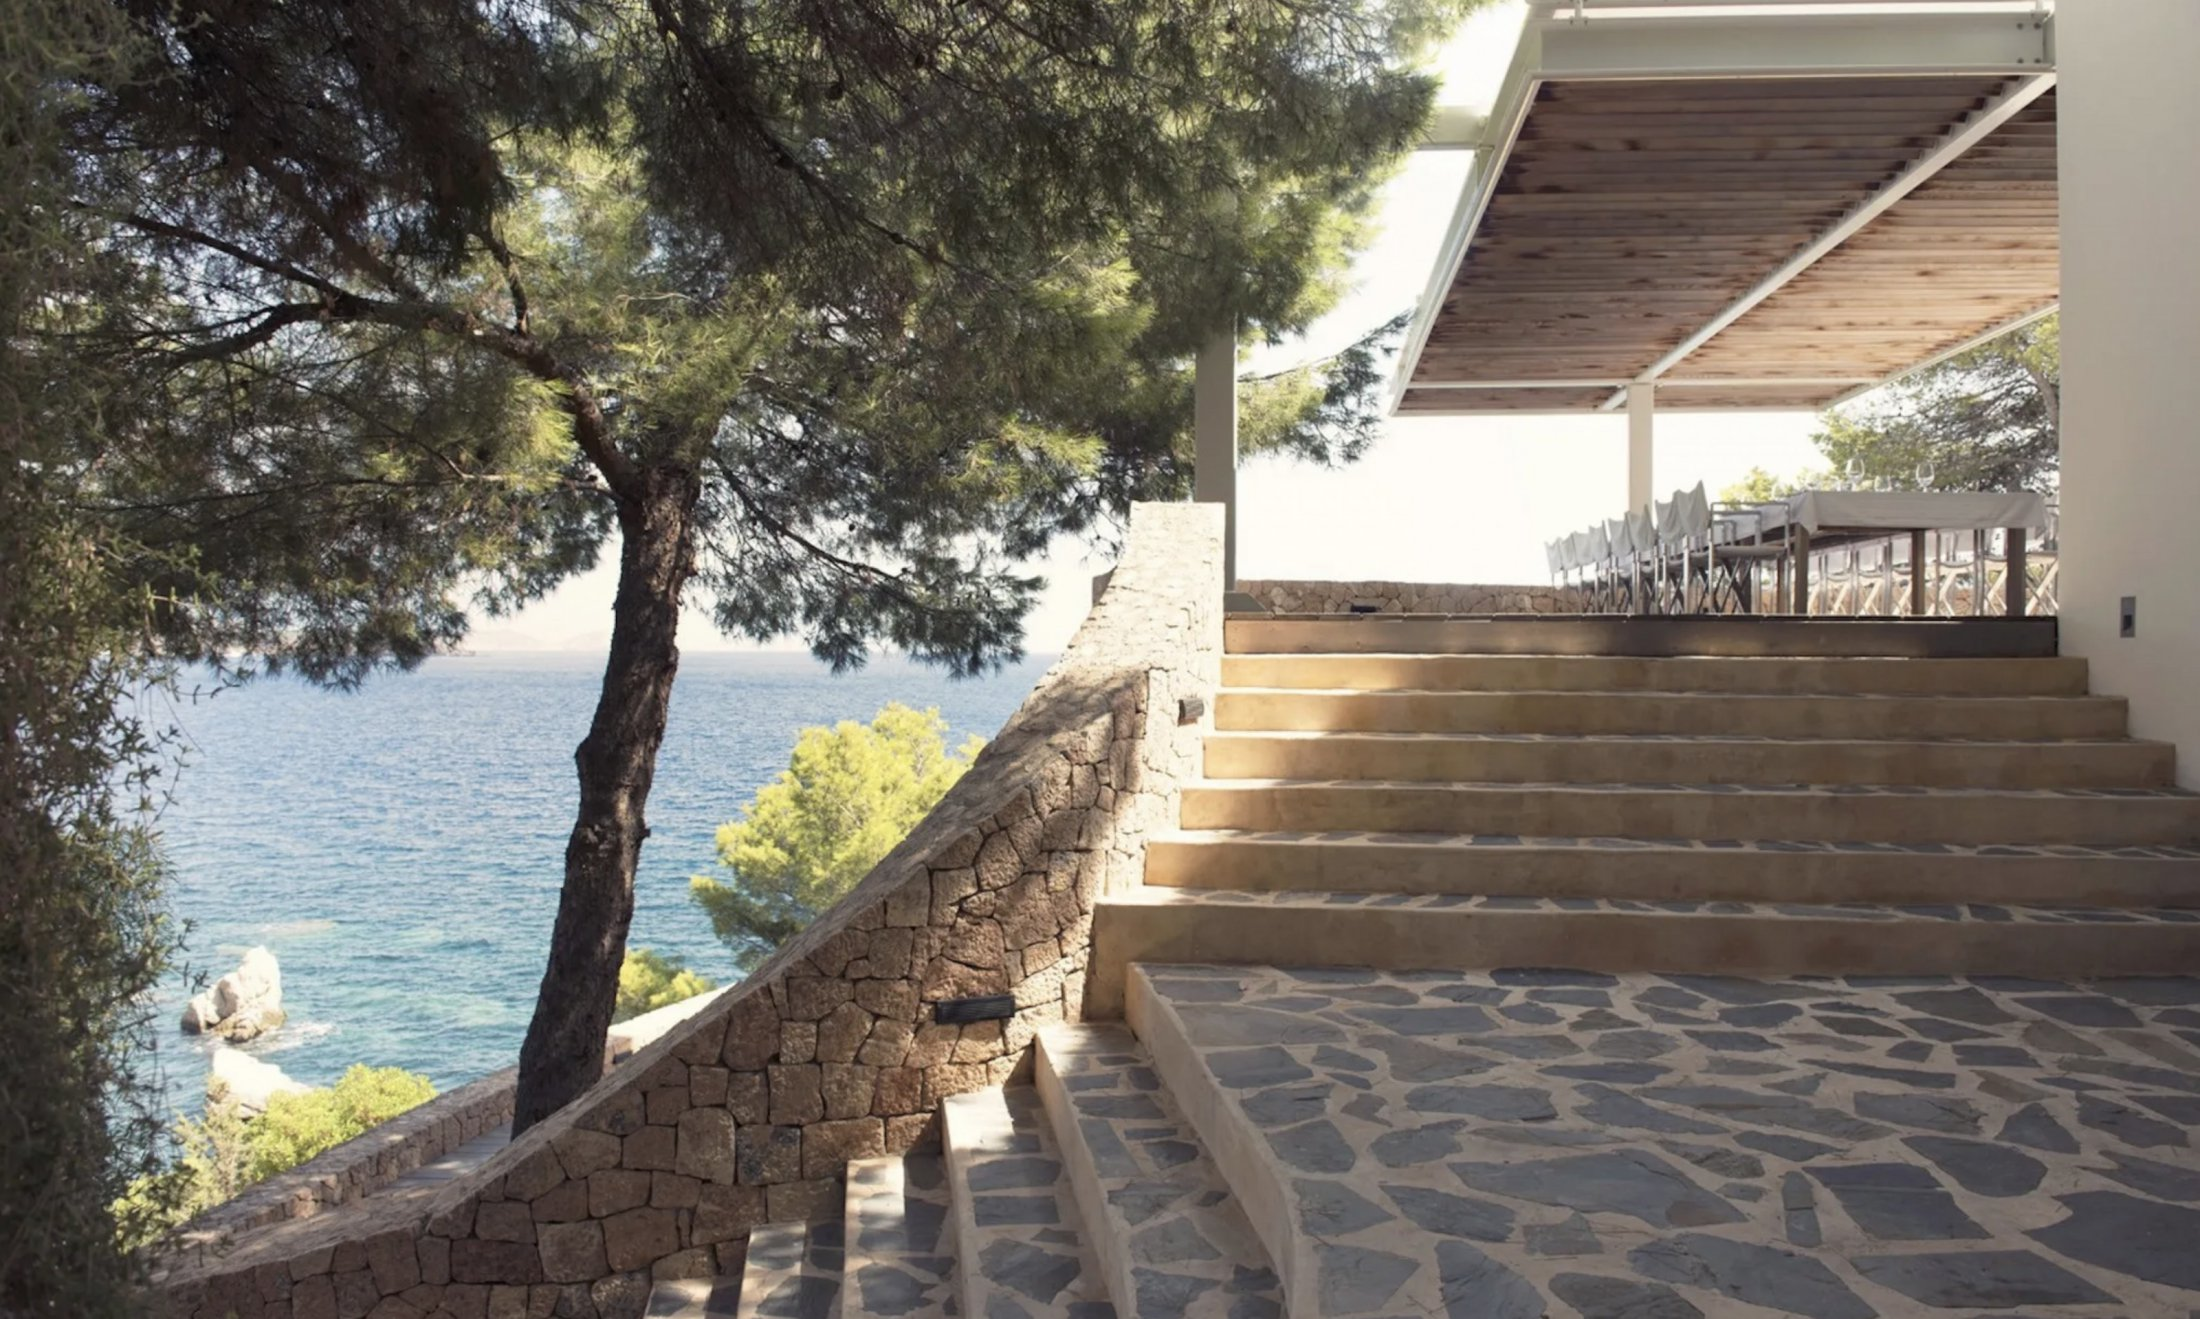 This amazing cliff ledge property is an estate set on the front line in the charming Es Cubells